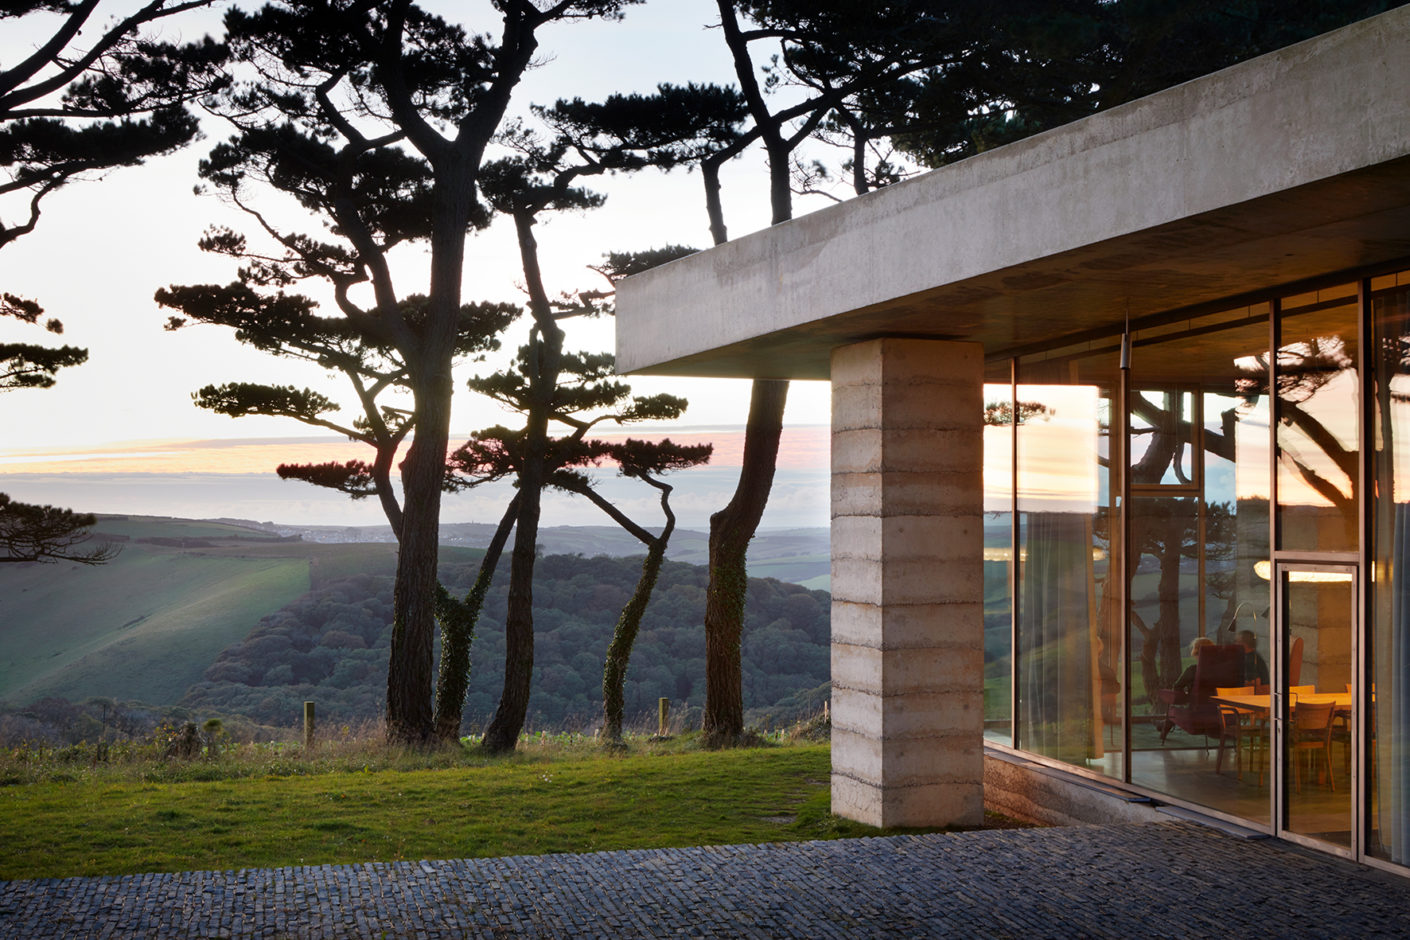 Large windows allow precisely calculated views of nature.